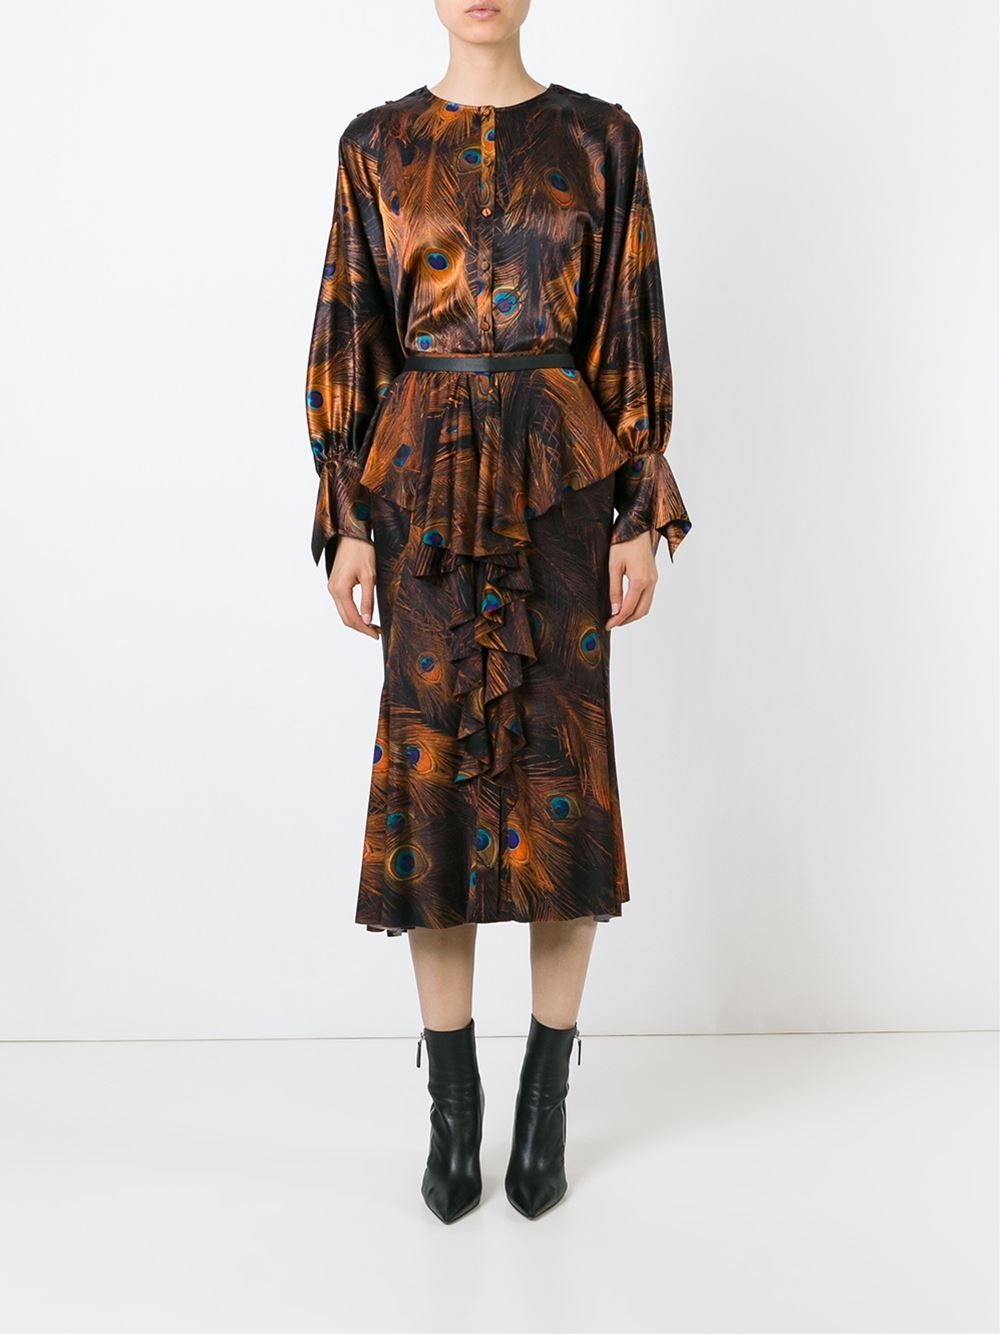 Women - Givenchy Peacock Feather Print Blouse - Tessabit.com – Luxury Fashion For Men and Women: Shipping Worldwide